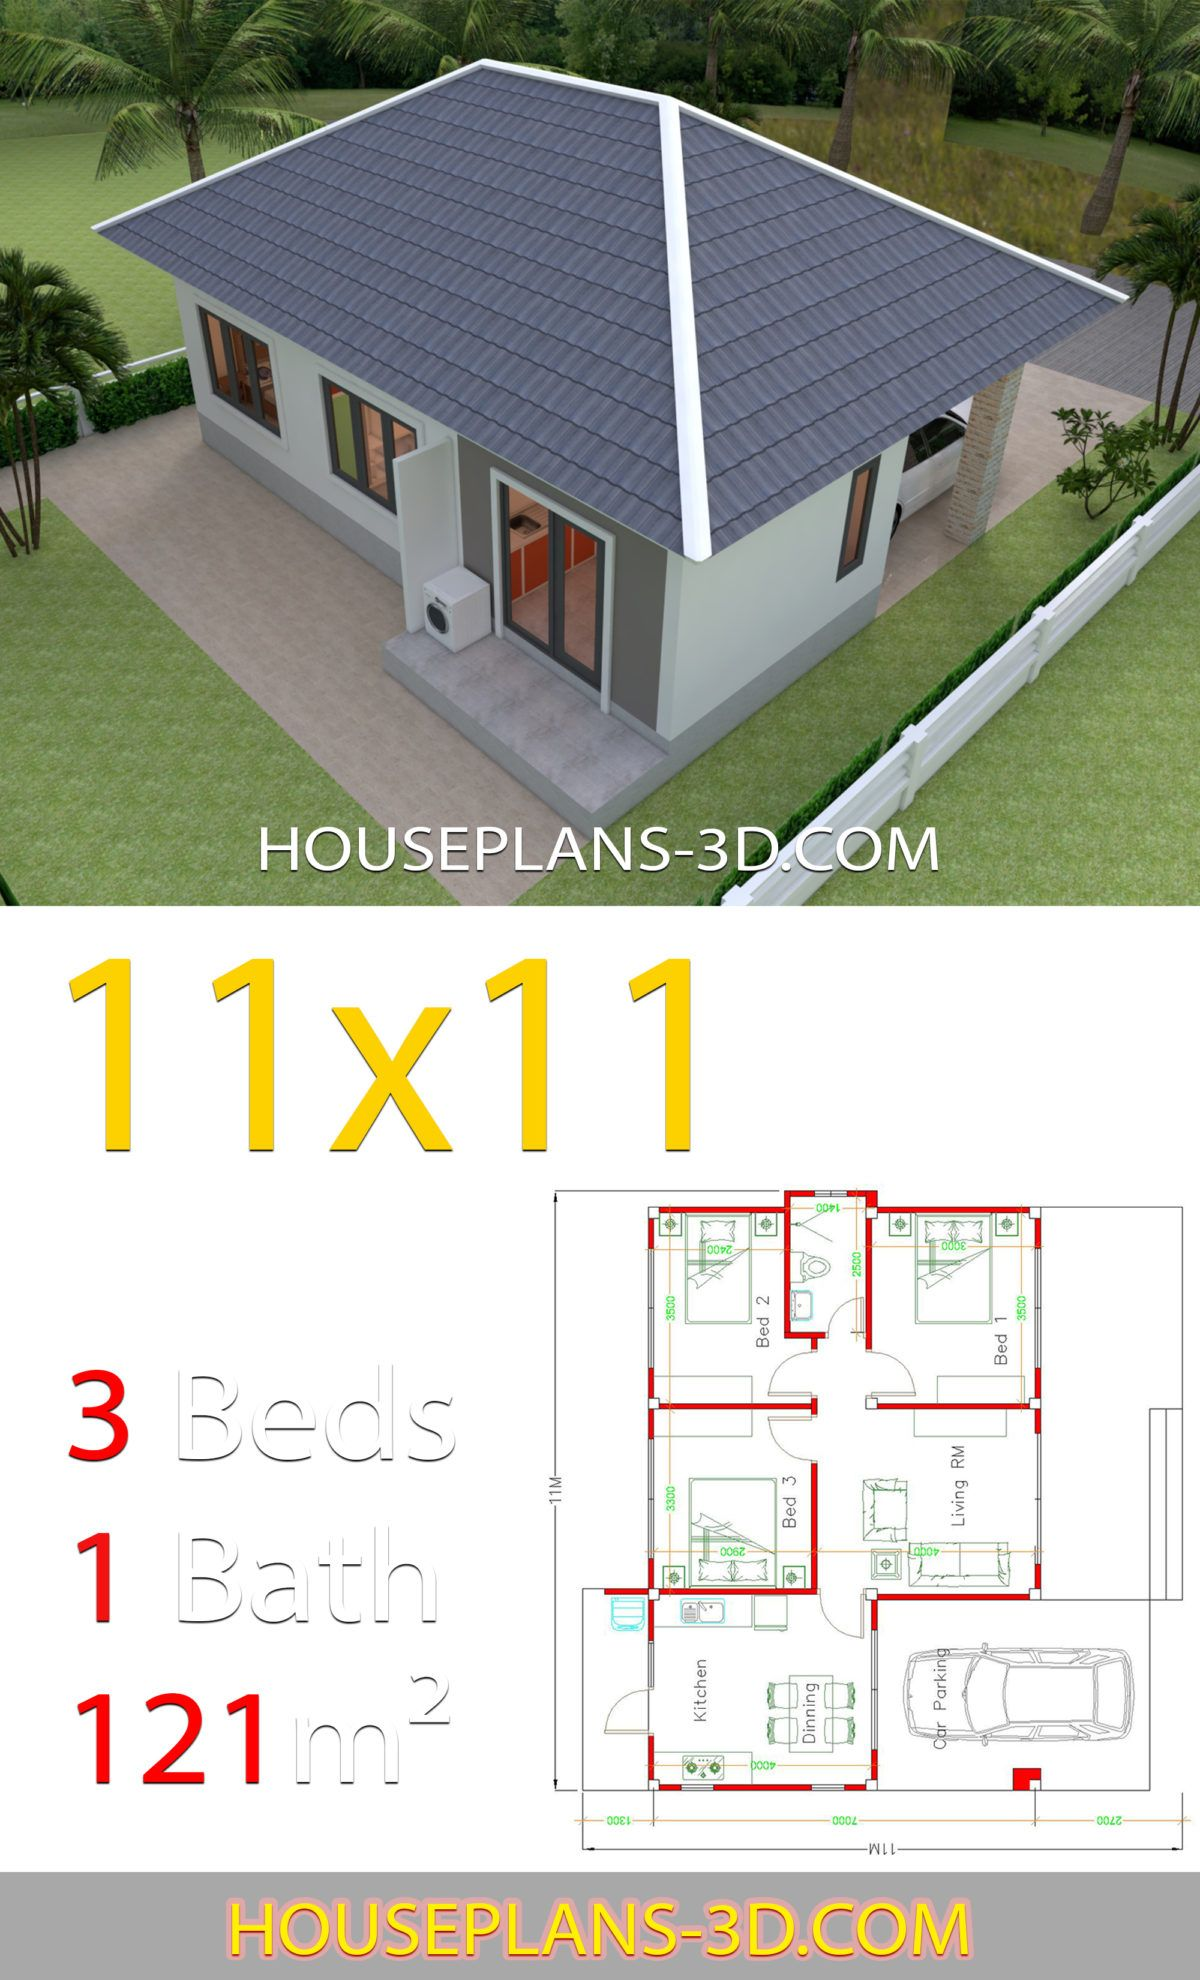 House Design 11x11 With 3 Bedrooms Hip Roof House Plans 3d Simple House Design Small House Design House Plans